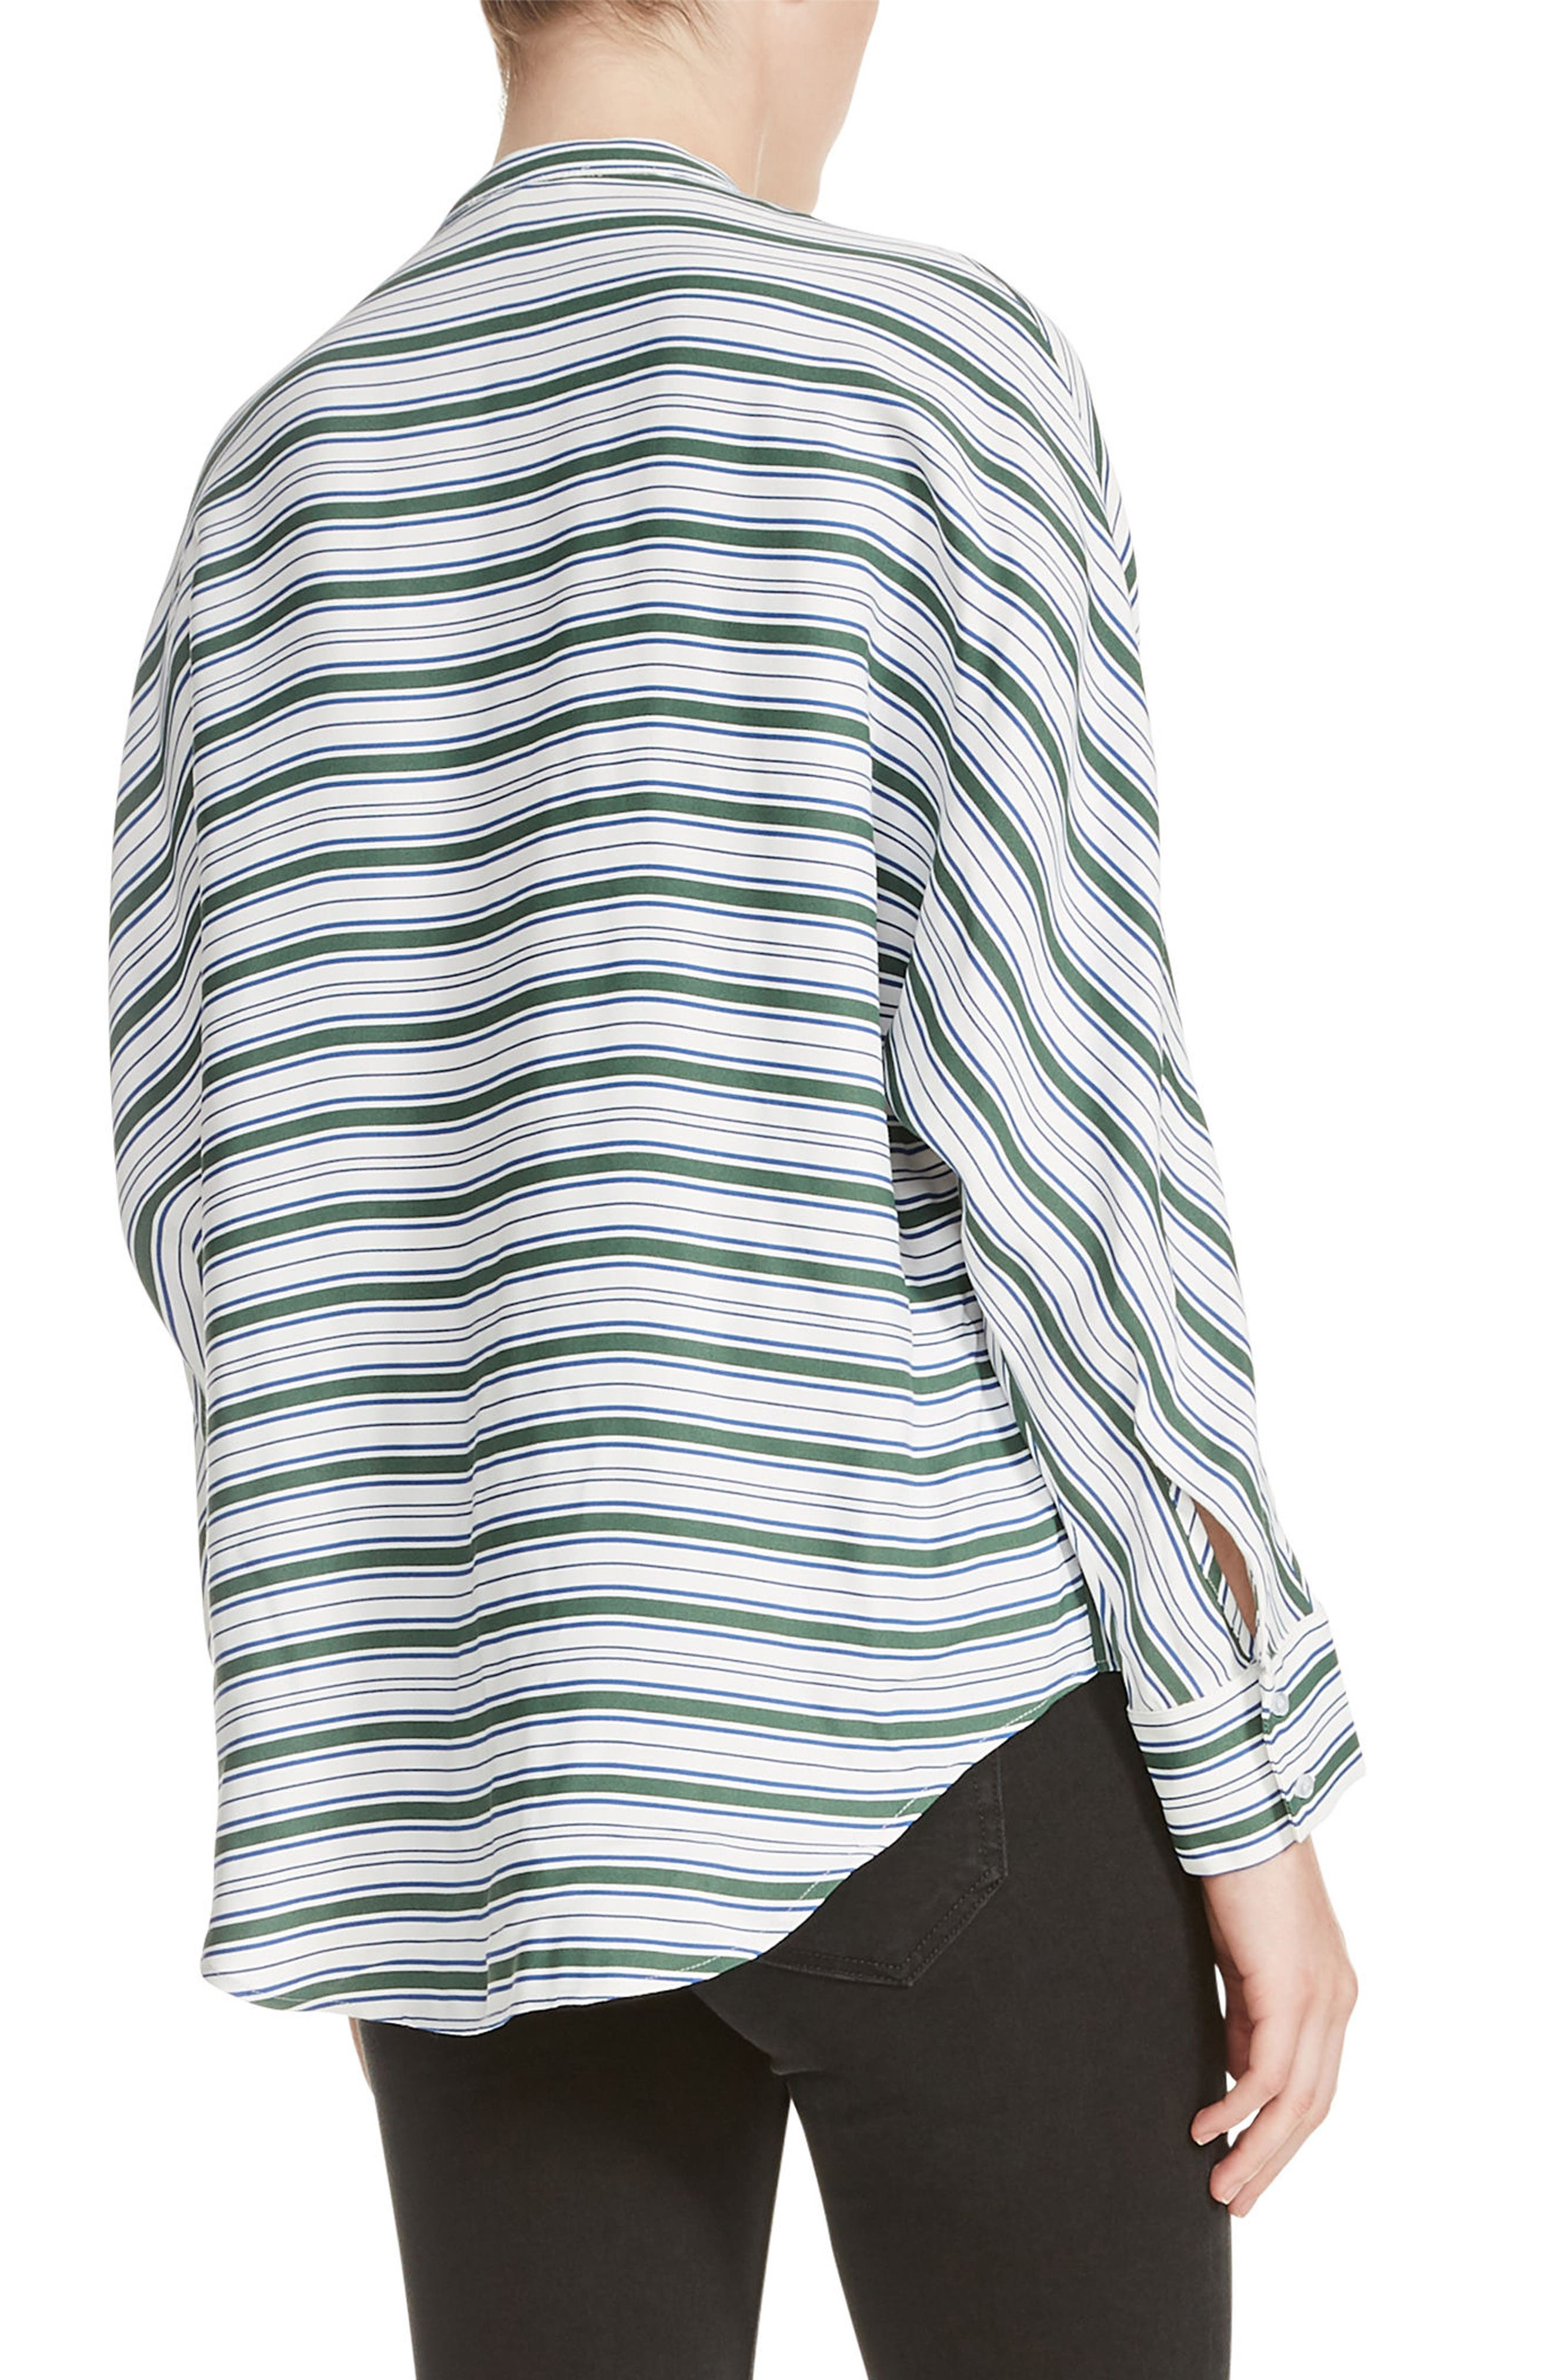 Coquille Stripe Blouse,                             Alternate thumbnail 2, color,                             400